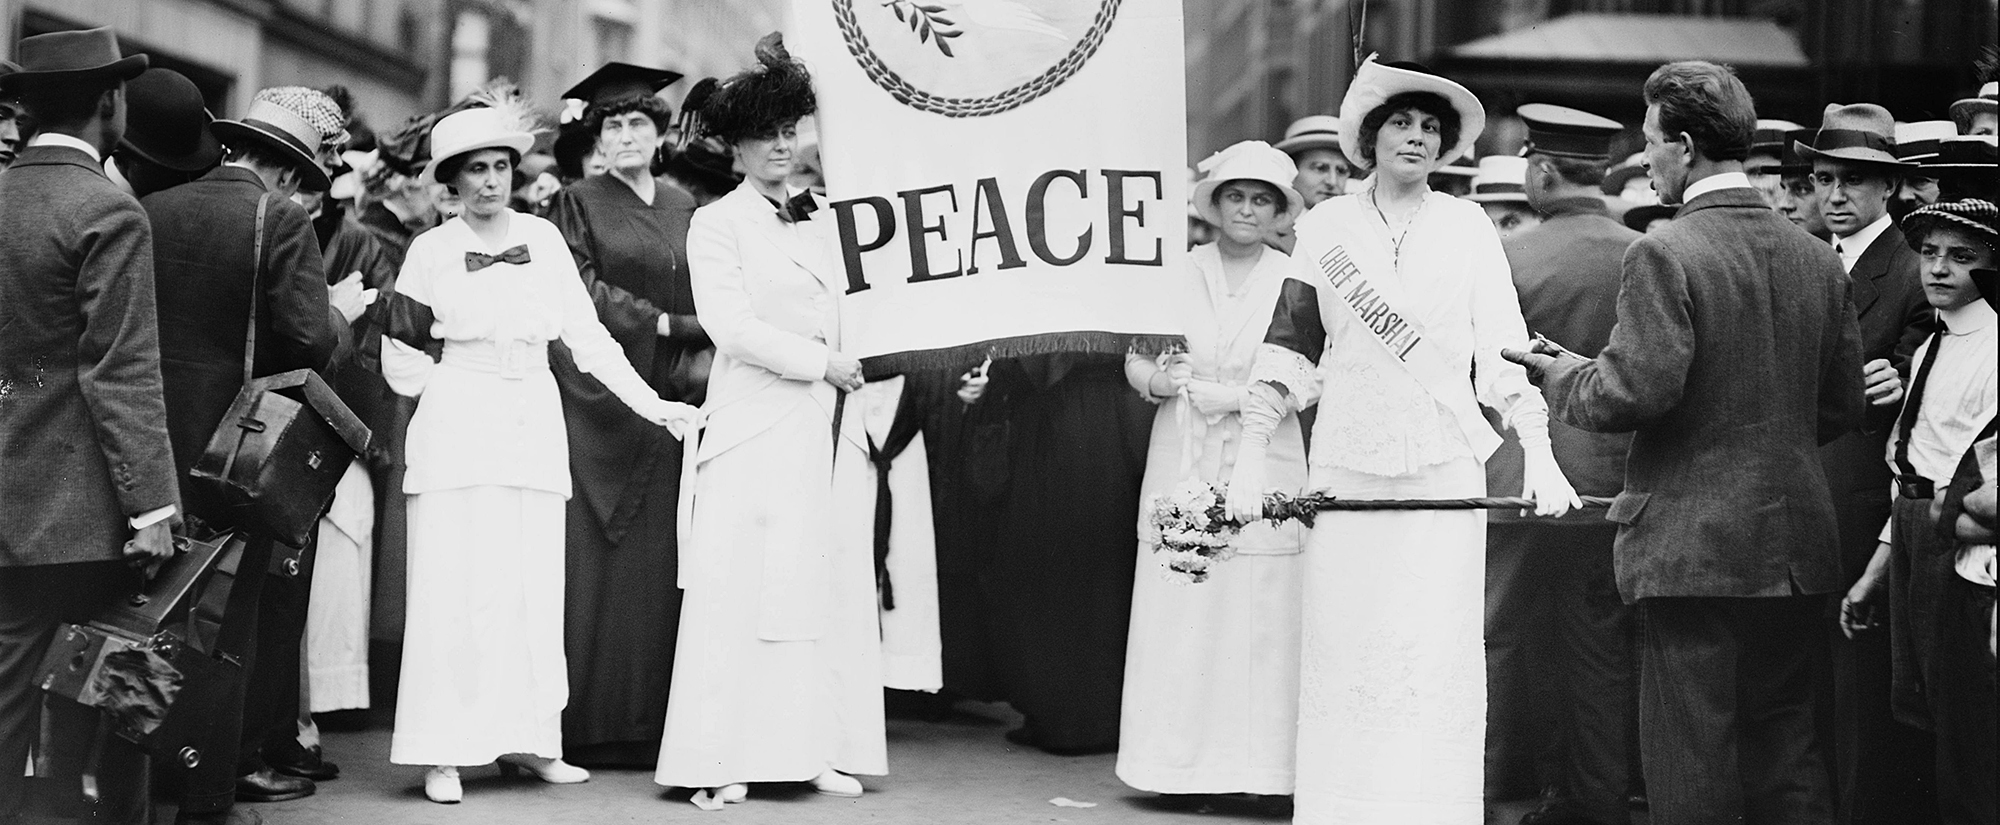 AMERICAN EXPERIENCE: The Great War - Women's Peace Parade